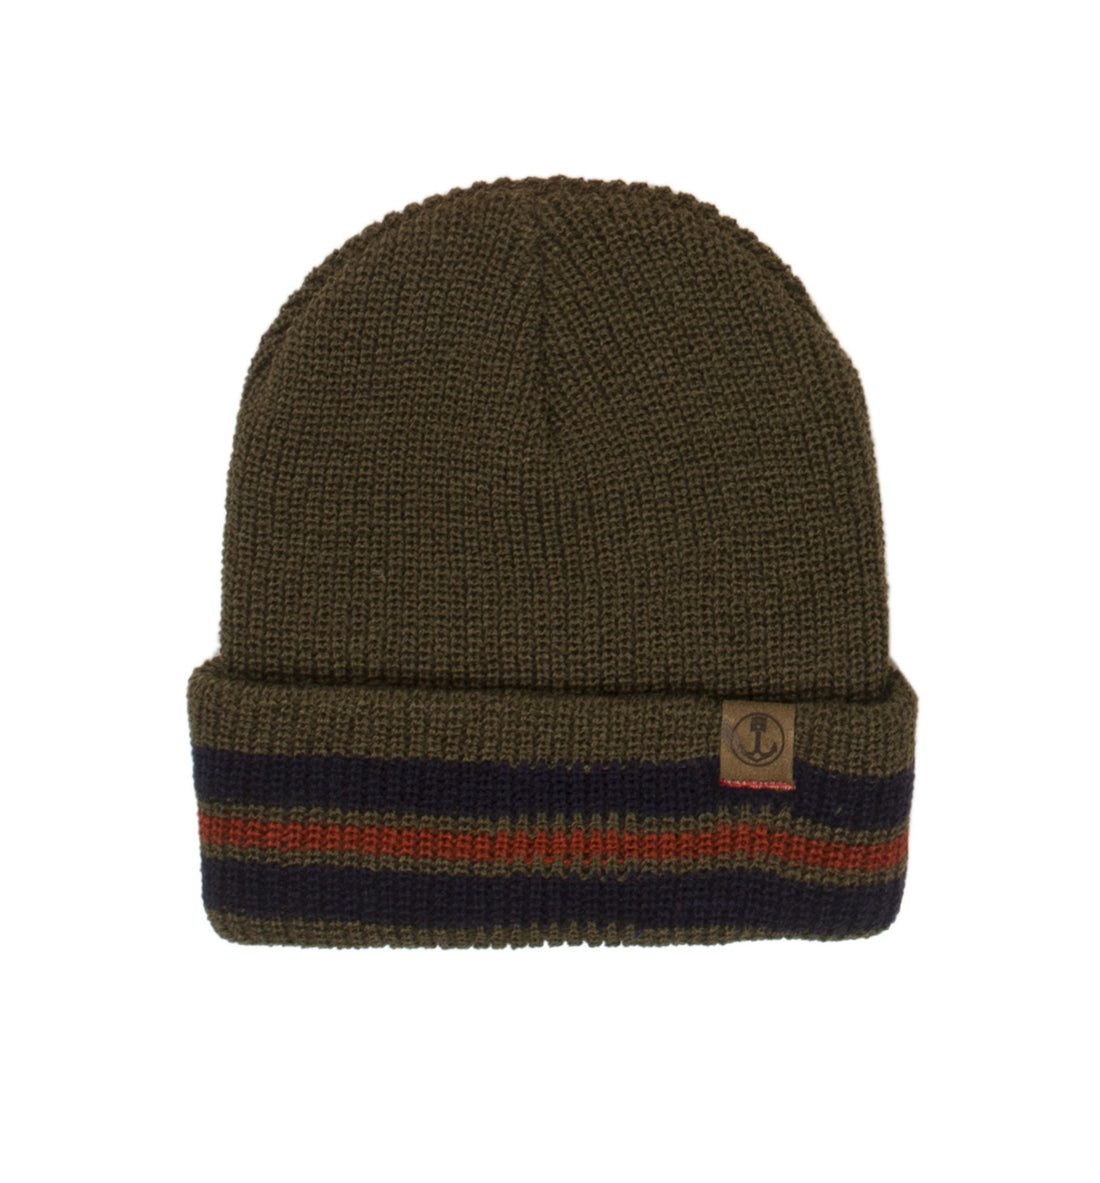 INR Palmer Beanie - Accessories: Headwear: Beanie - Iron and Resin